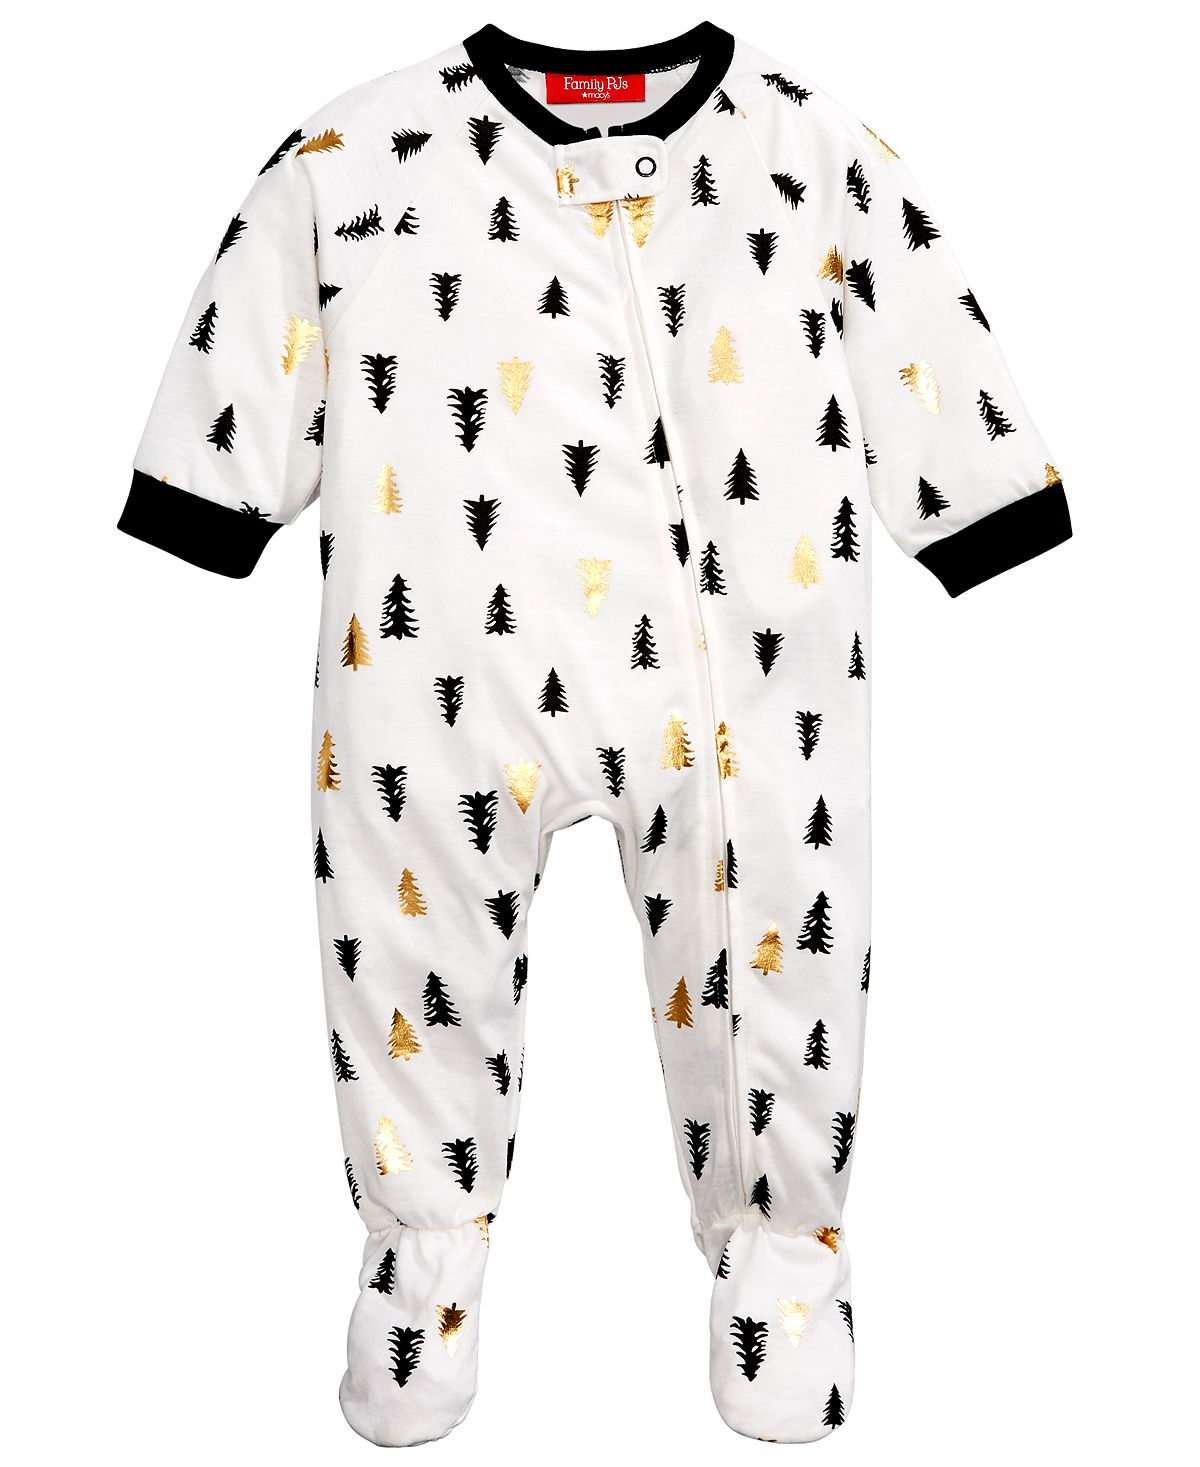 Matching Family Pajamas Baby Tree-print Footed Pajamas